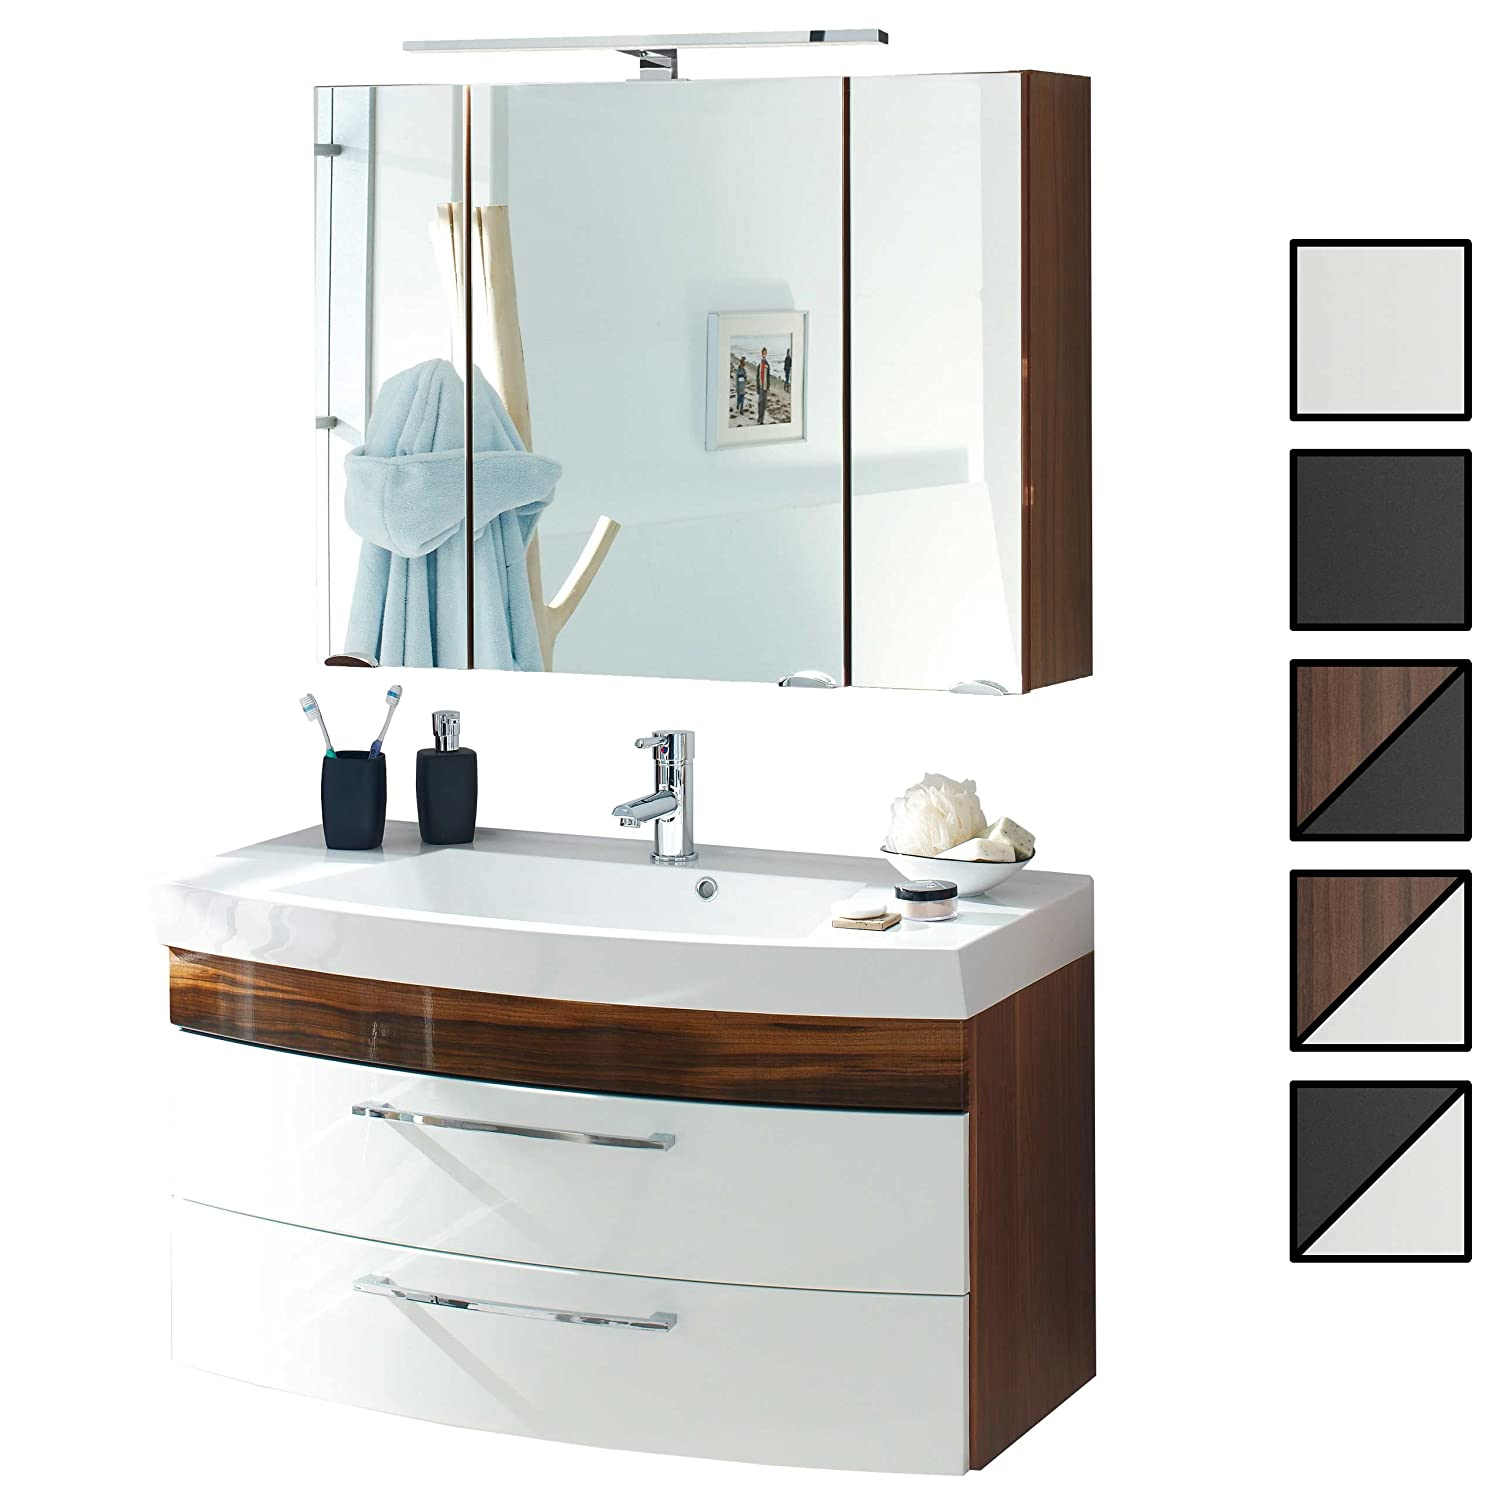 Badmobel Set Verona Xl Anthrazit 5 Tlg Spiegelschrank 90 Cm Led